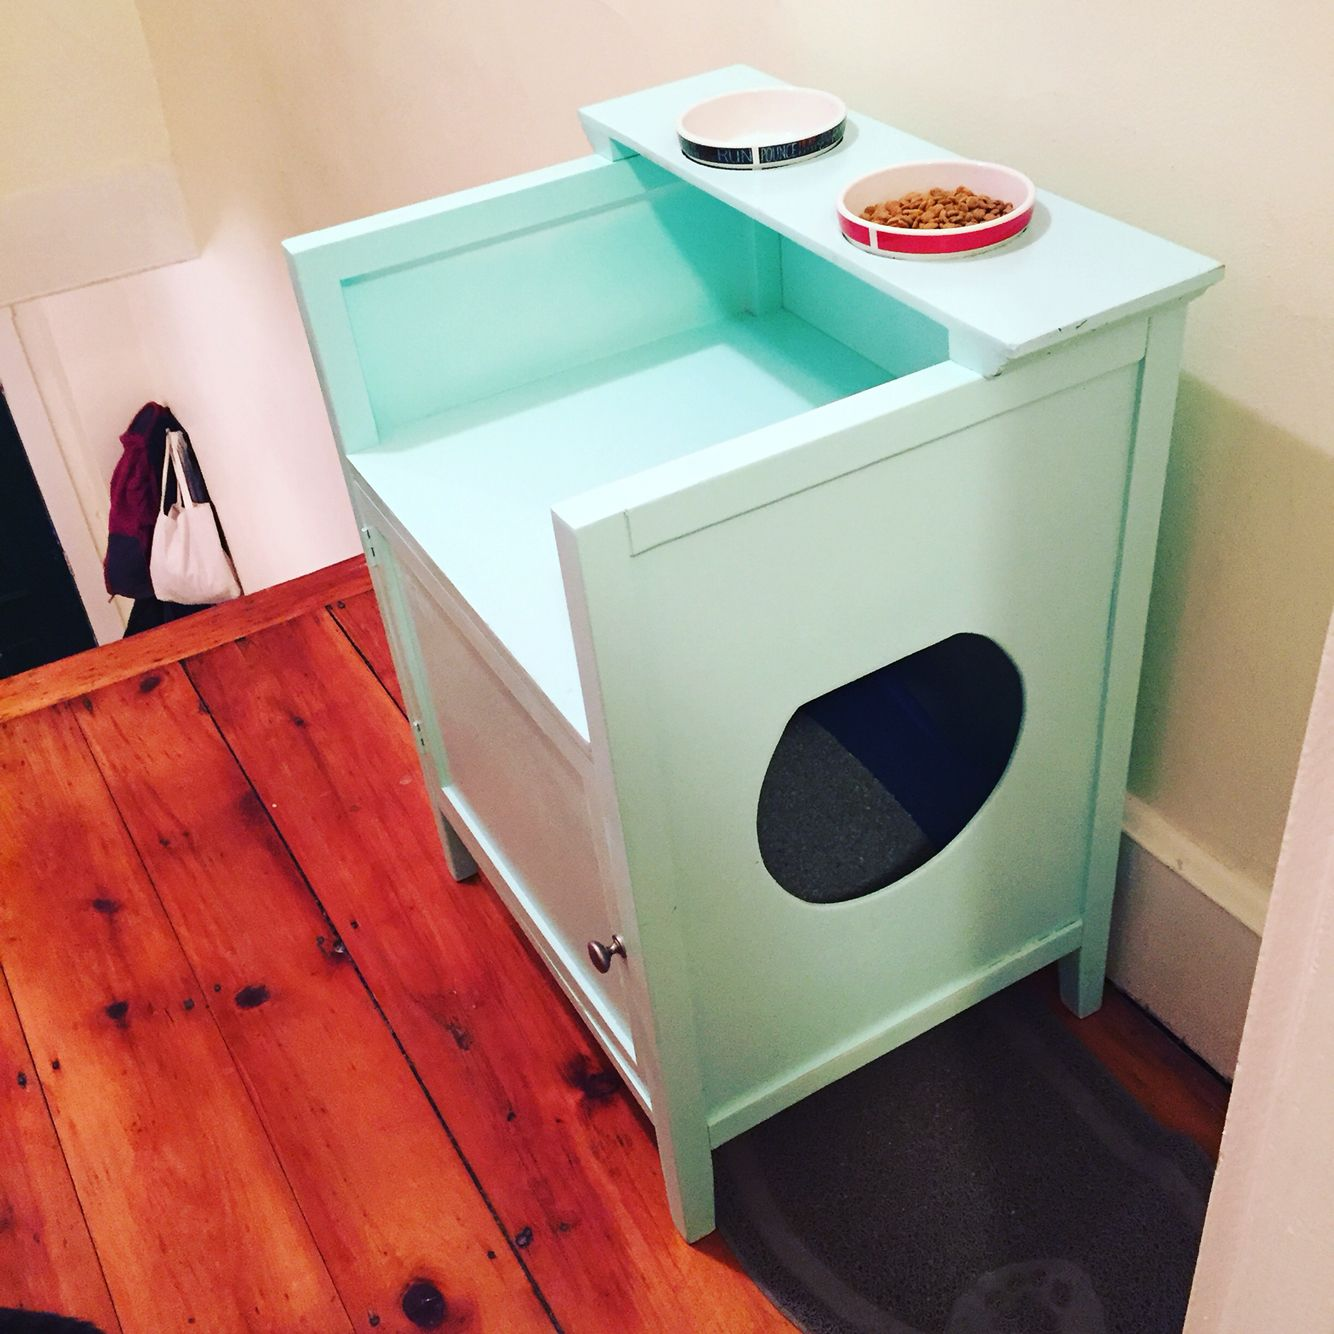 Diy Kitty Litter Area And Food Station Cat Food Station Pet Food Station Diy Cat Food